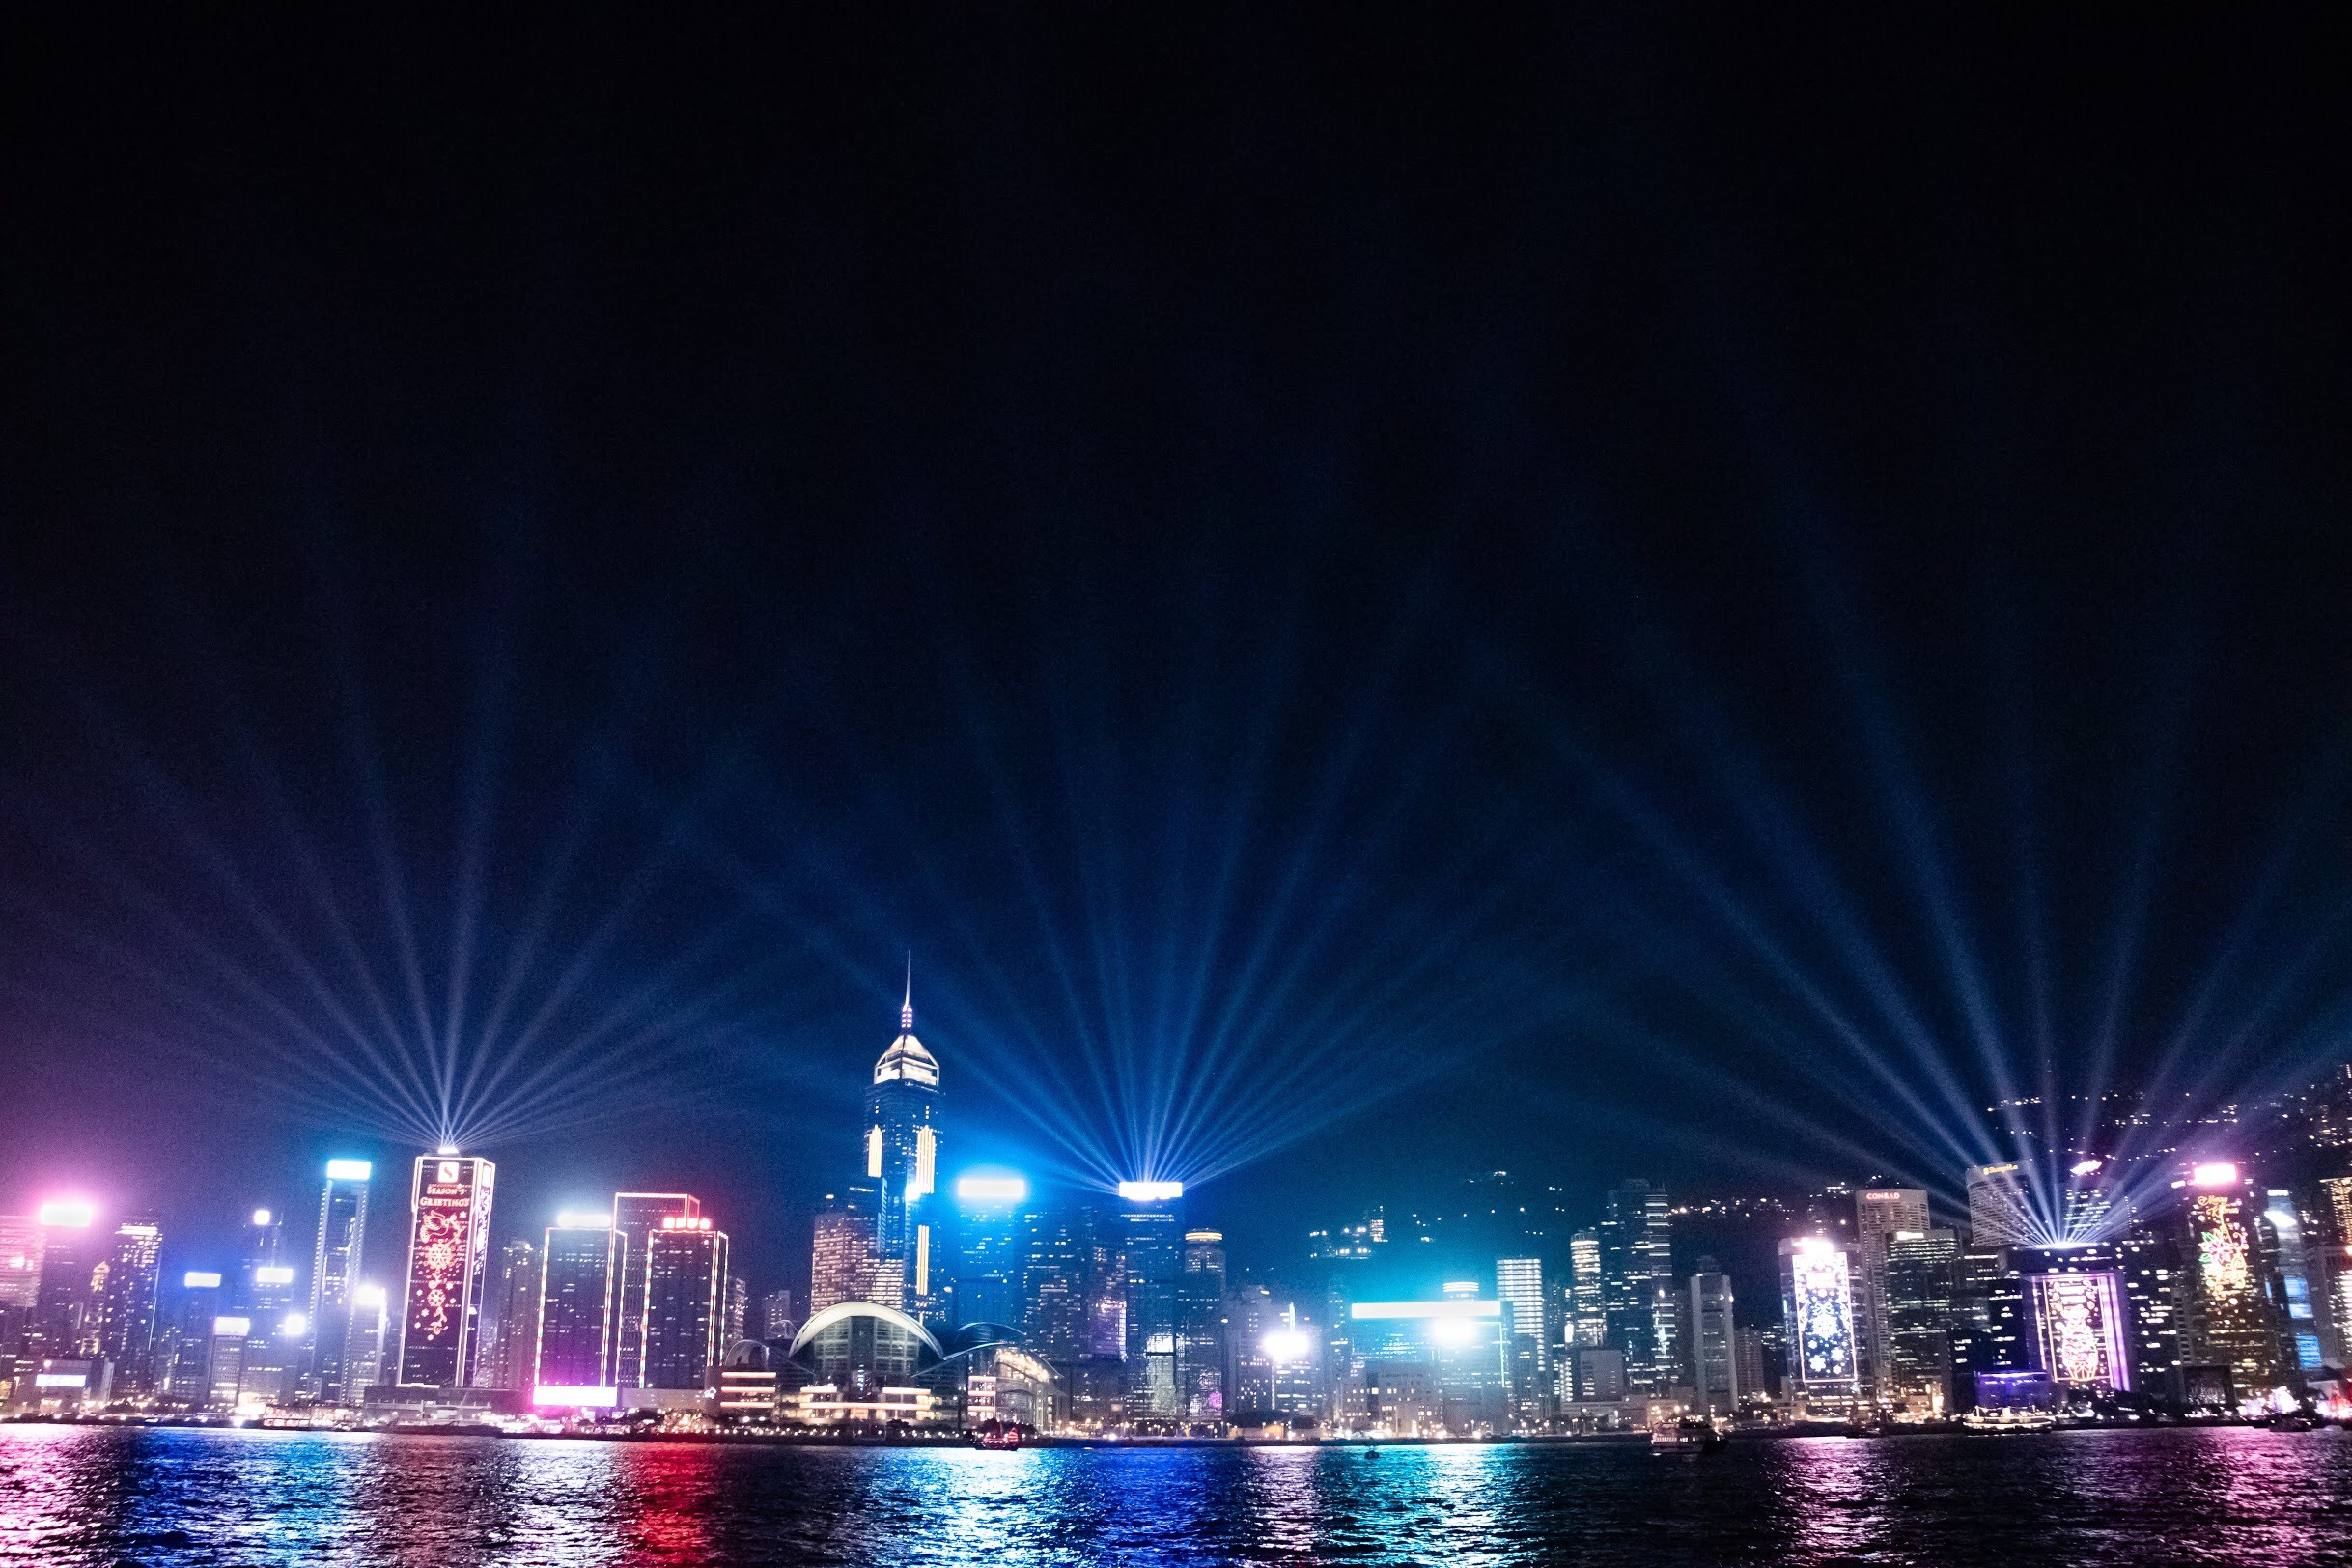 A Symphony of Lights Winter 2018 @Victoria Harbour Hong Kong